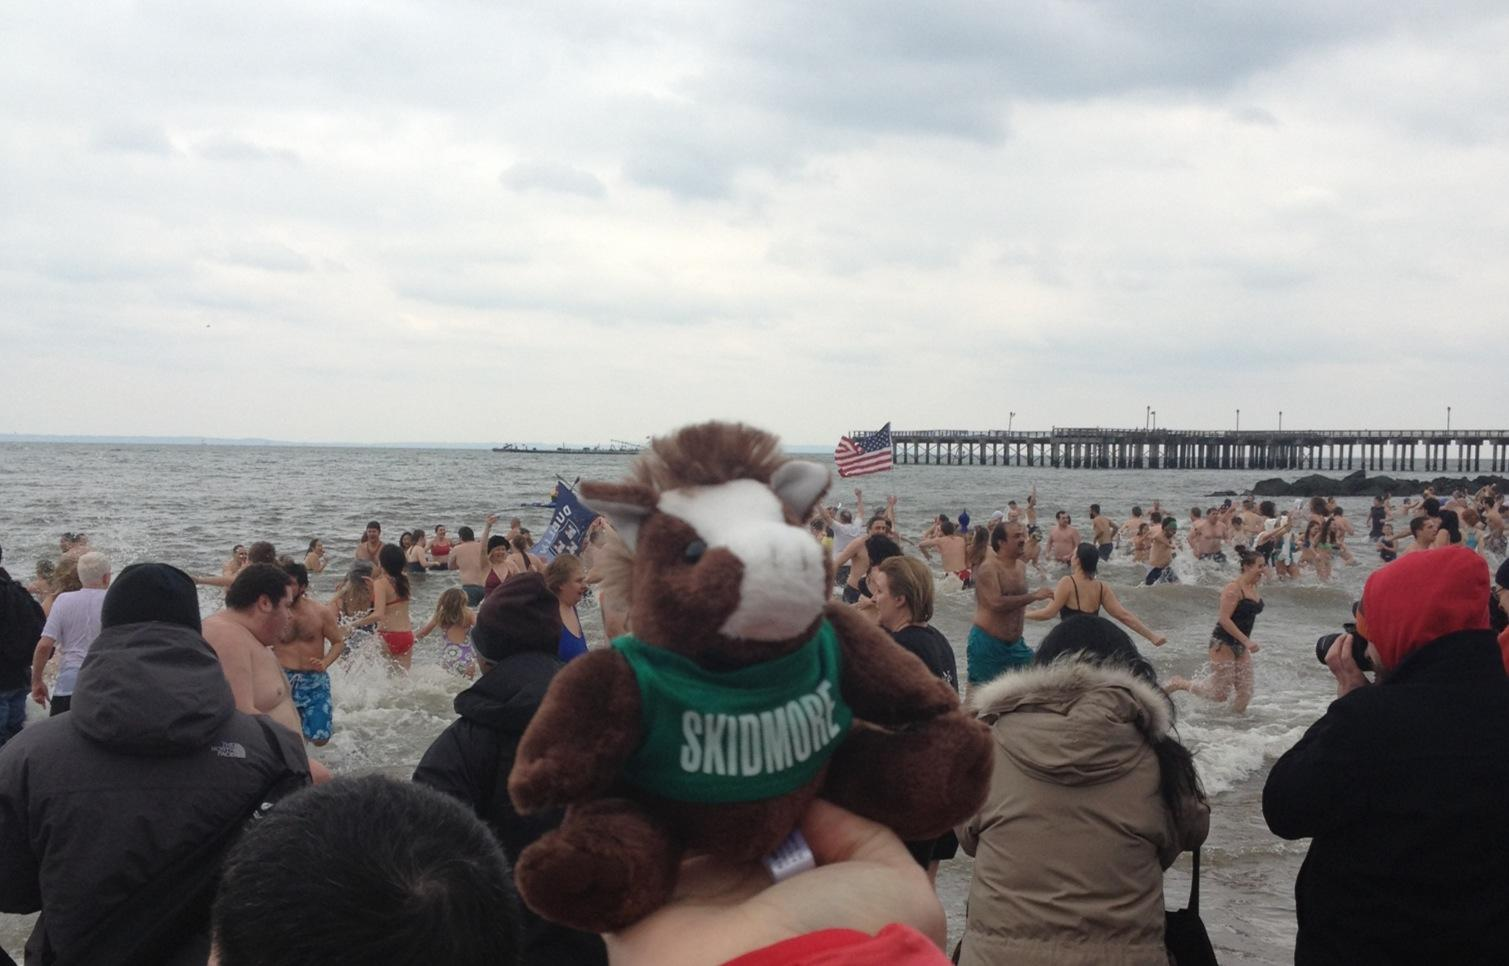 Skids%20at%20the%20Coney%20Island%20Polar%20Bear%20Plunge%20on%20New%20Years%20Day%202013.%20He%20sure%20is%20having%20fun%21